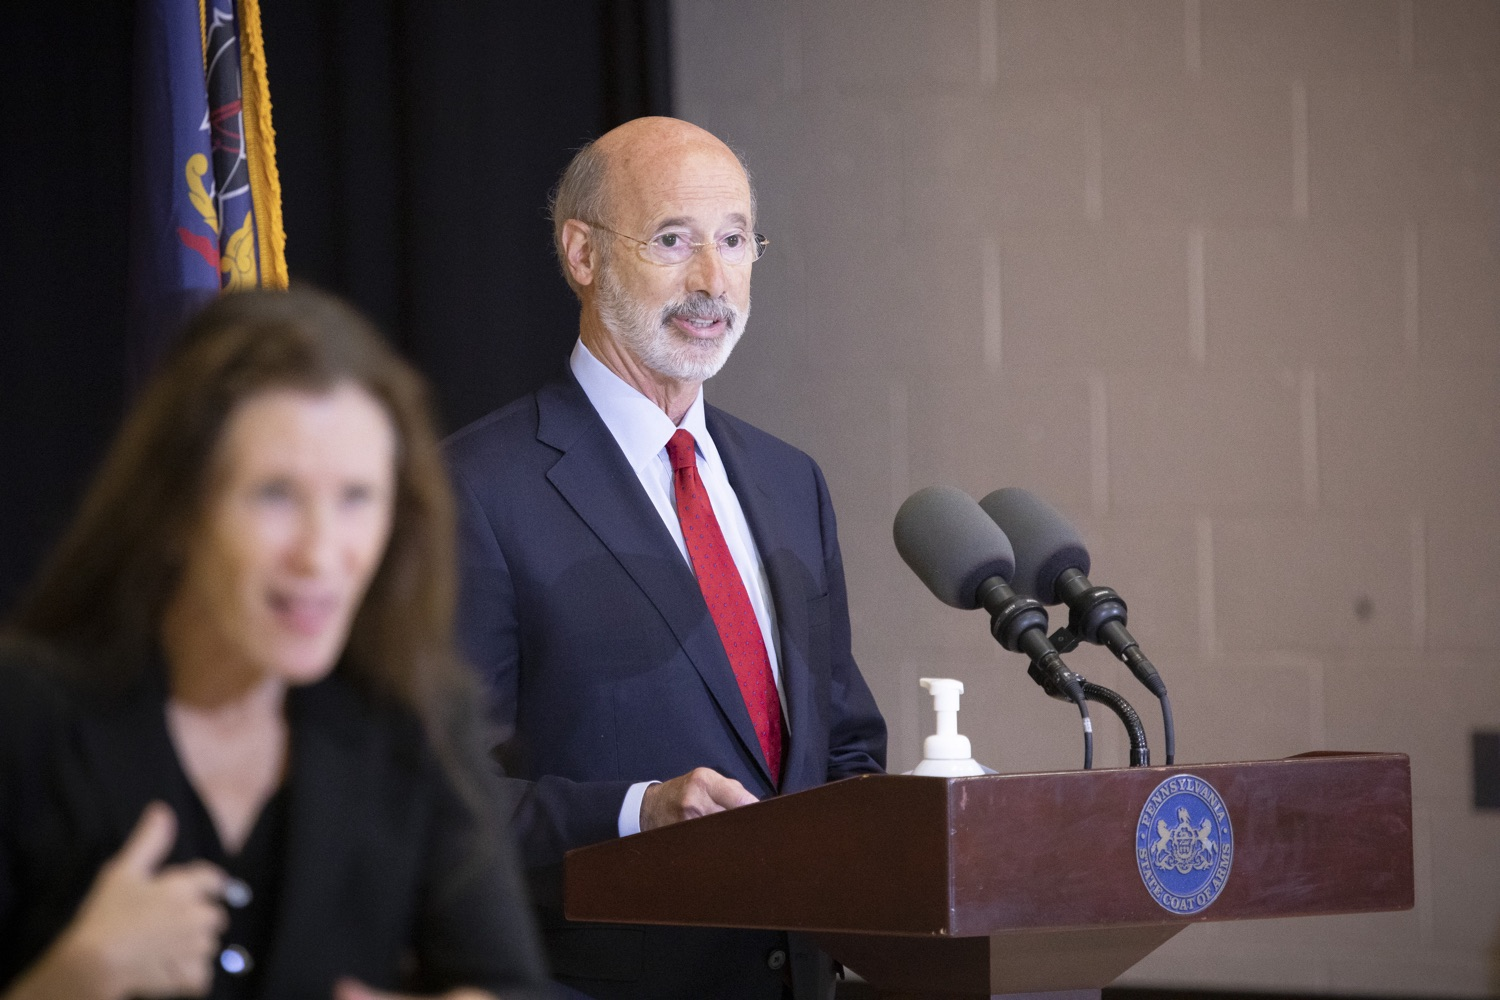 """<a href=""""https://filesource.wostreaming.net/commonwealthofpa/photo/18310_gov_adult_use_cannabis_dz_020.jpg"""" target=""""_blank"""">⇣Download Photo<br></a>Governor Tom Wolf speaks to the press.Governor Tom Wolf visited The Mountain Center in Tobyhanna, Monroe County today to talk about the economic growth potential and restorative justice benefits of legalizing adult-use cannabis, something the state General Assembly has not yet done despite multiple requests from the governor and Lieutenant Governor John Fetterman to take up legislation this fall.  Tobyhanna, PA  October 13, 2020"""